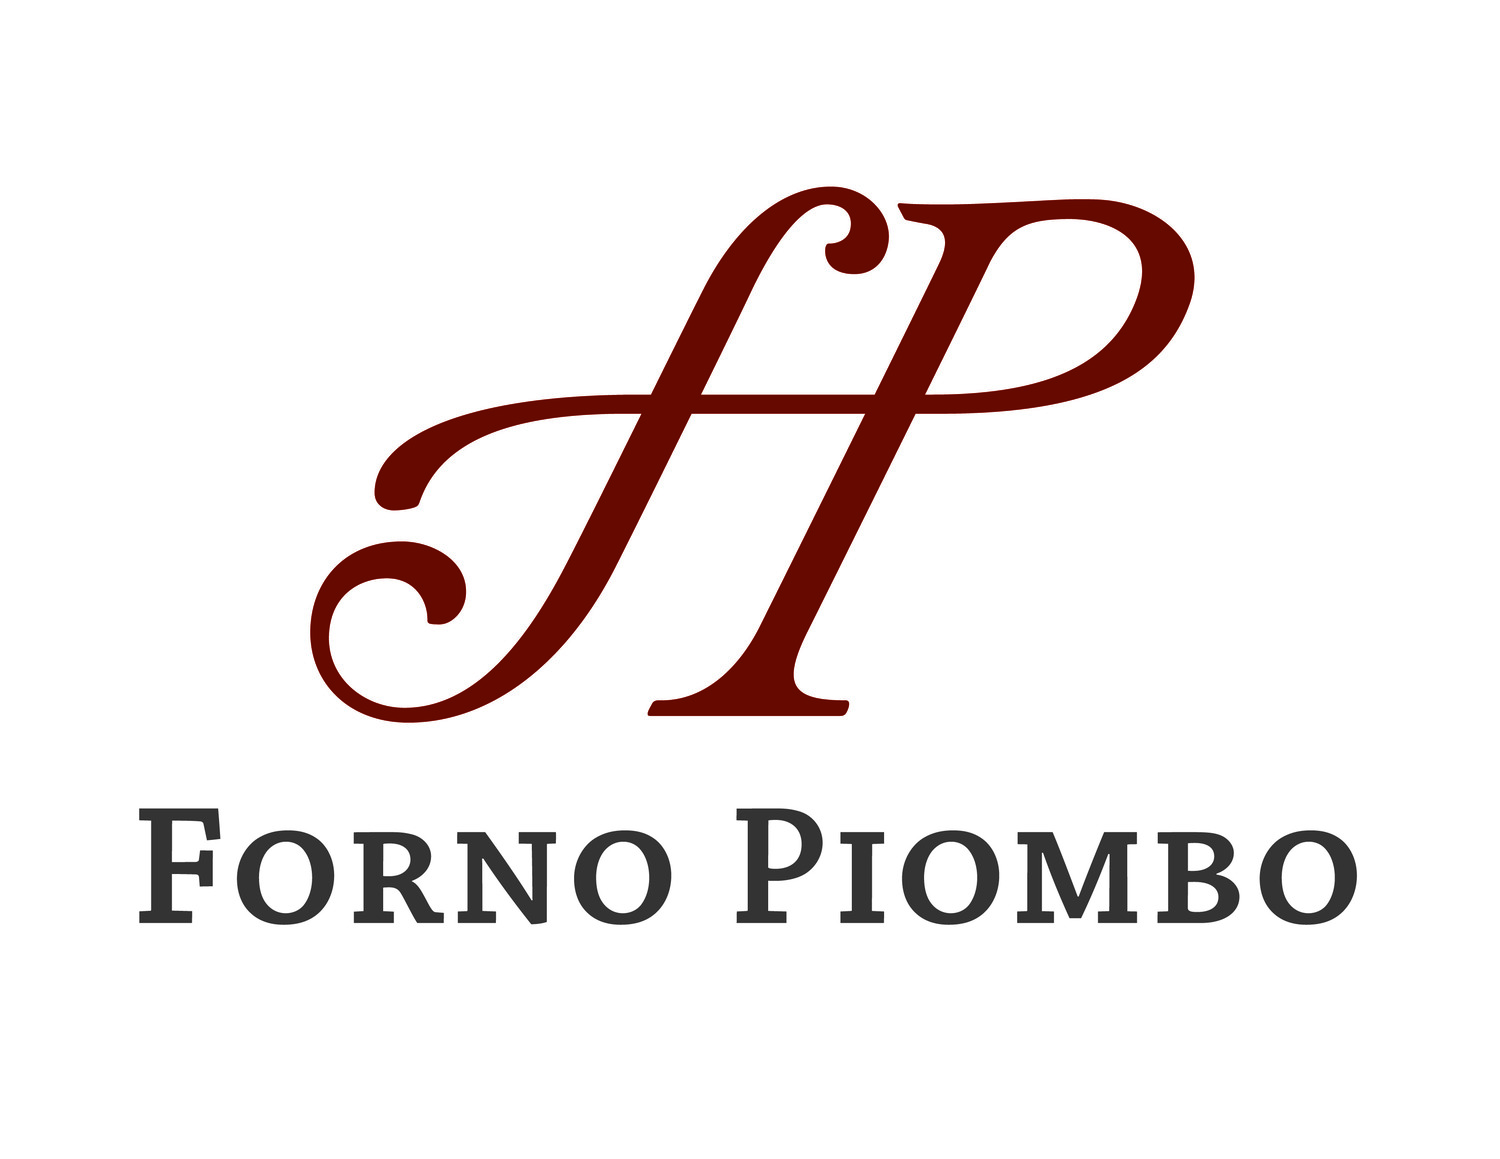 Forno Piombo | Hand Crafted Wood Fire Pizza Ovens